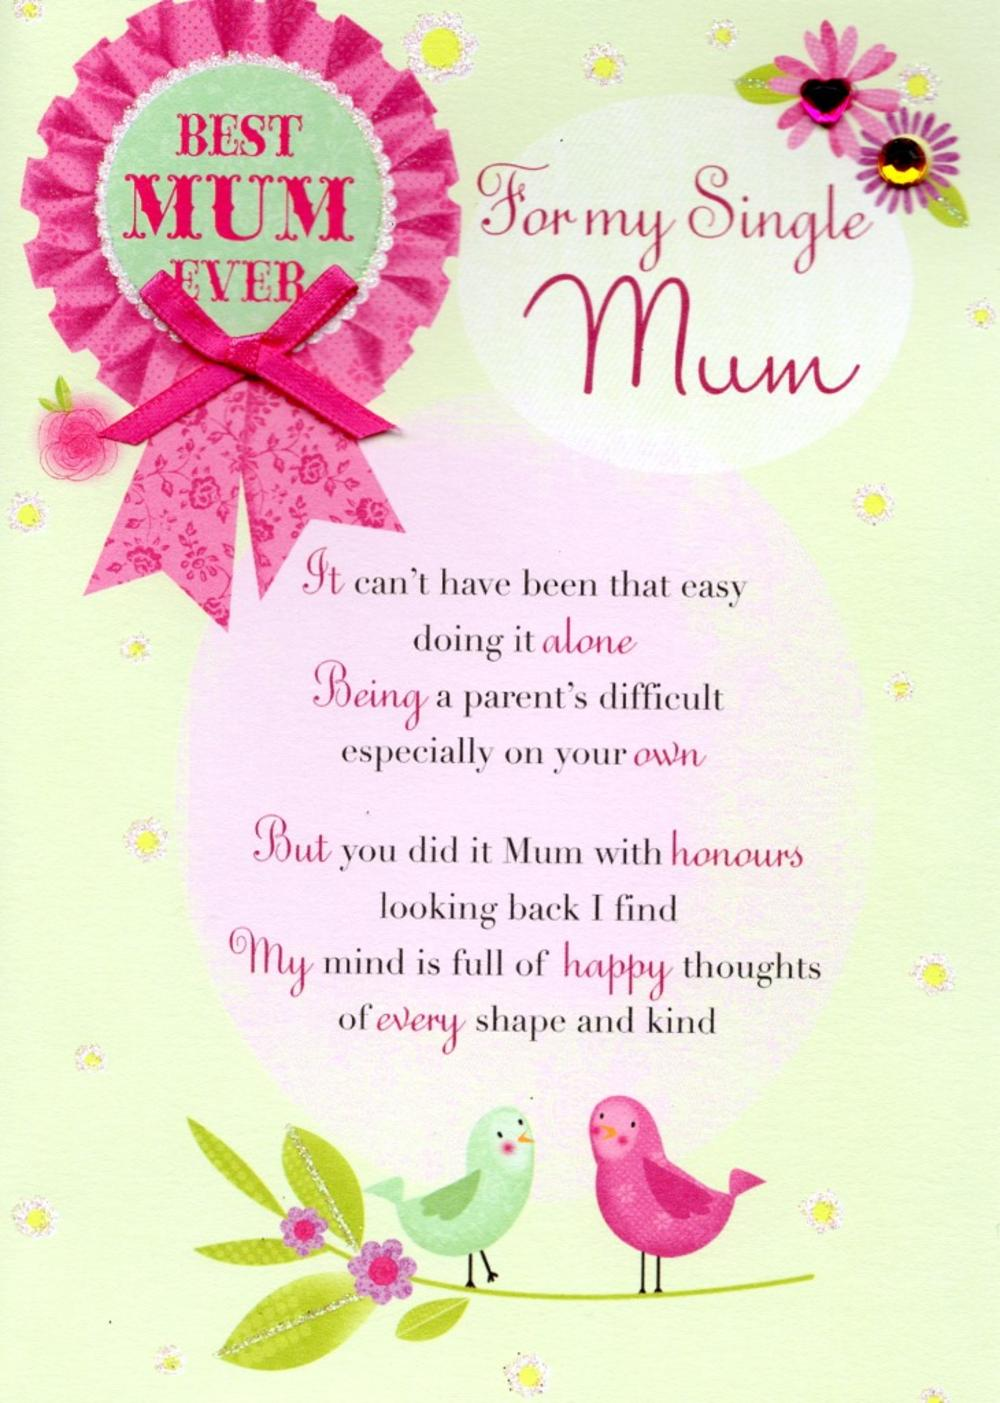 hight resolution of for my single mum mothers day card cards